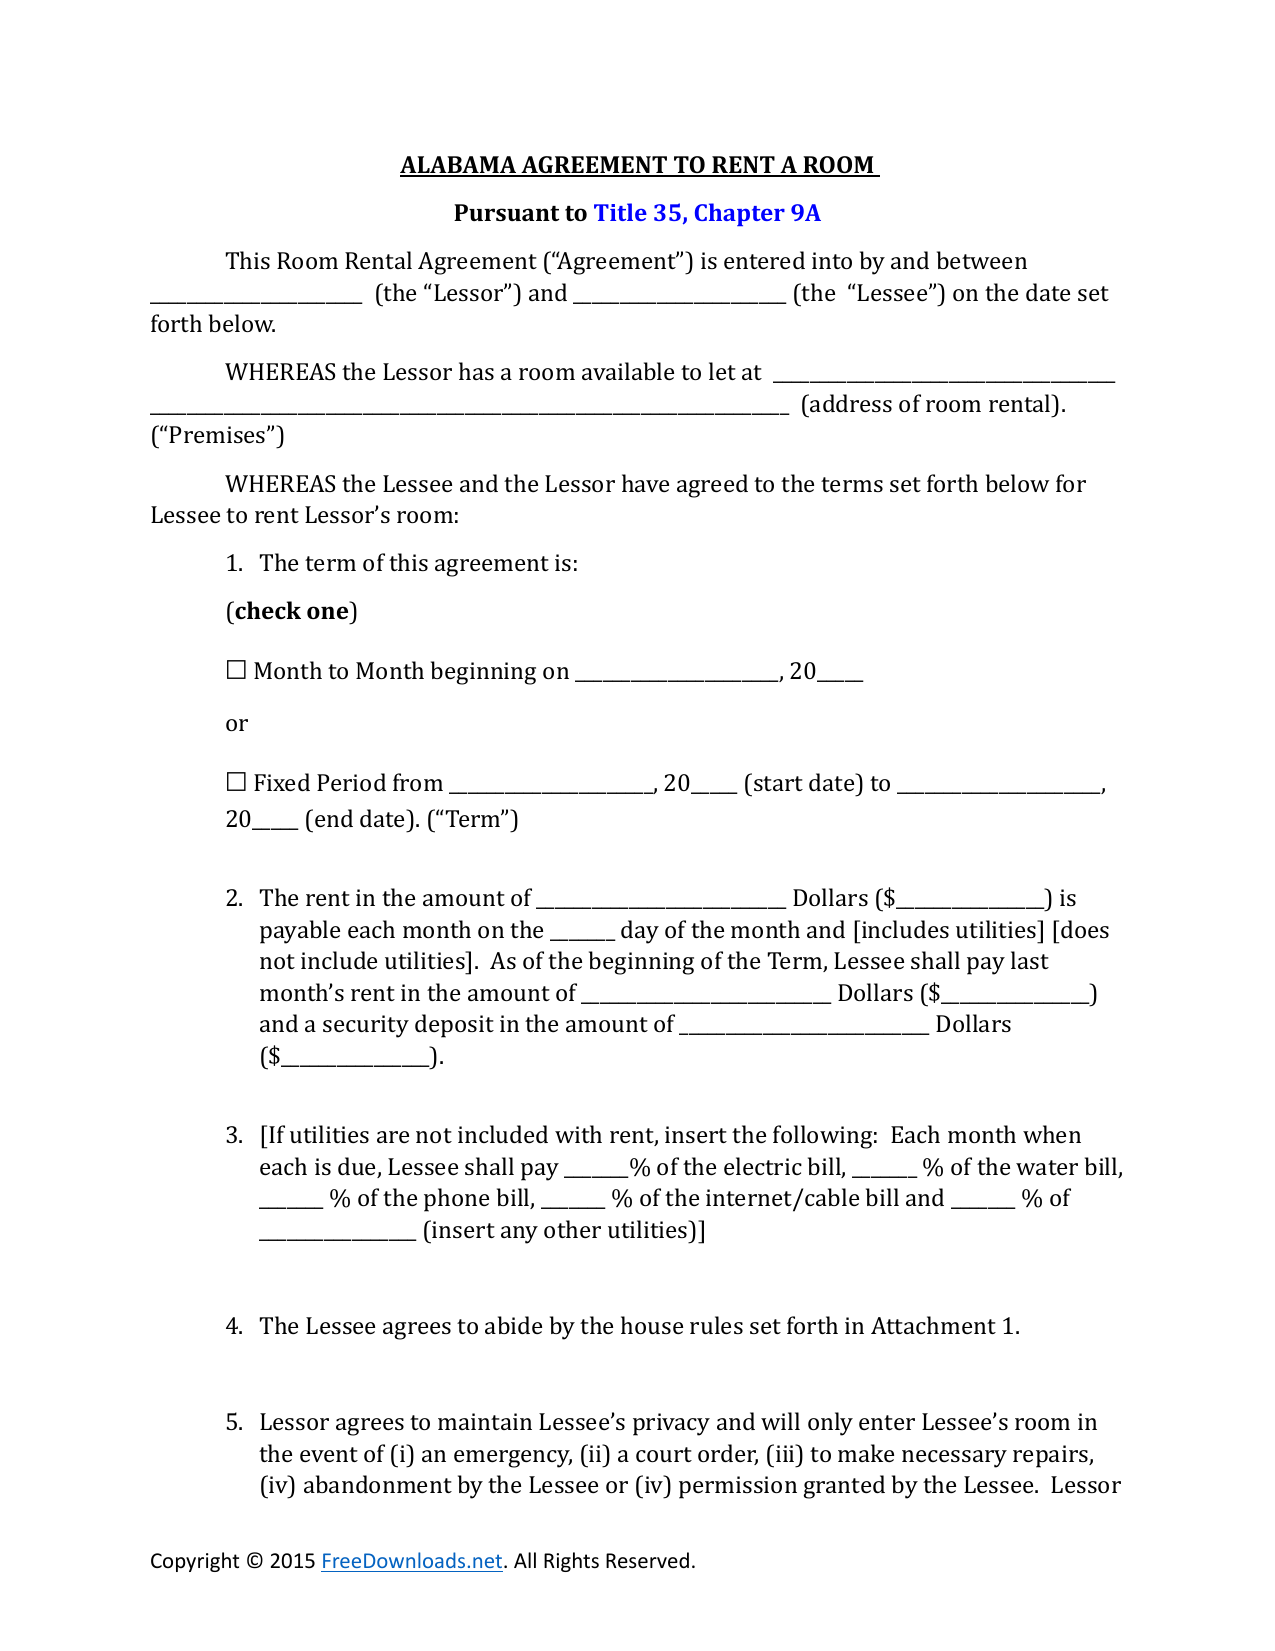 for renting a conduminum application form